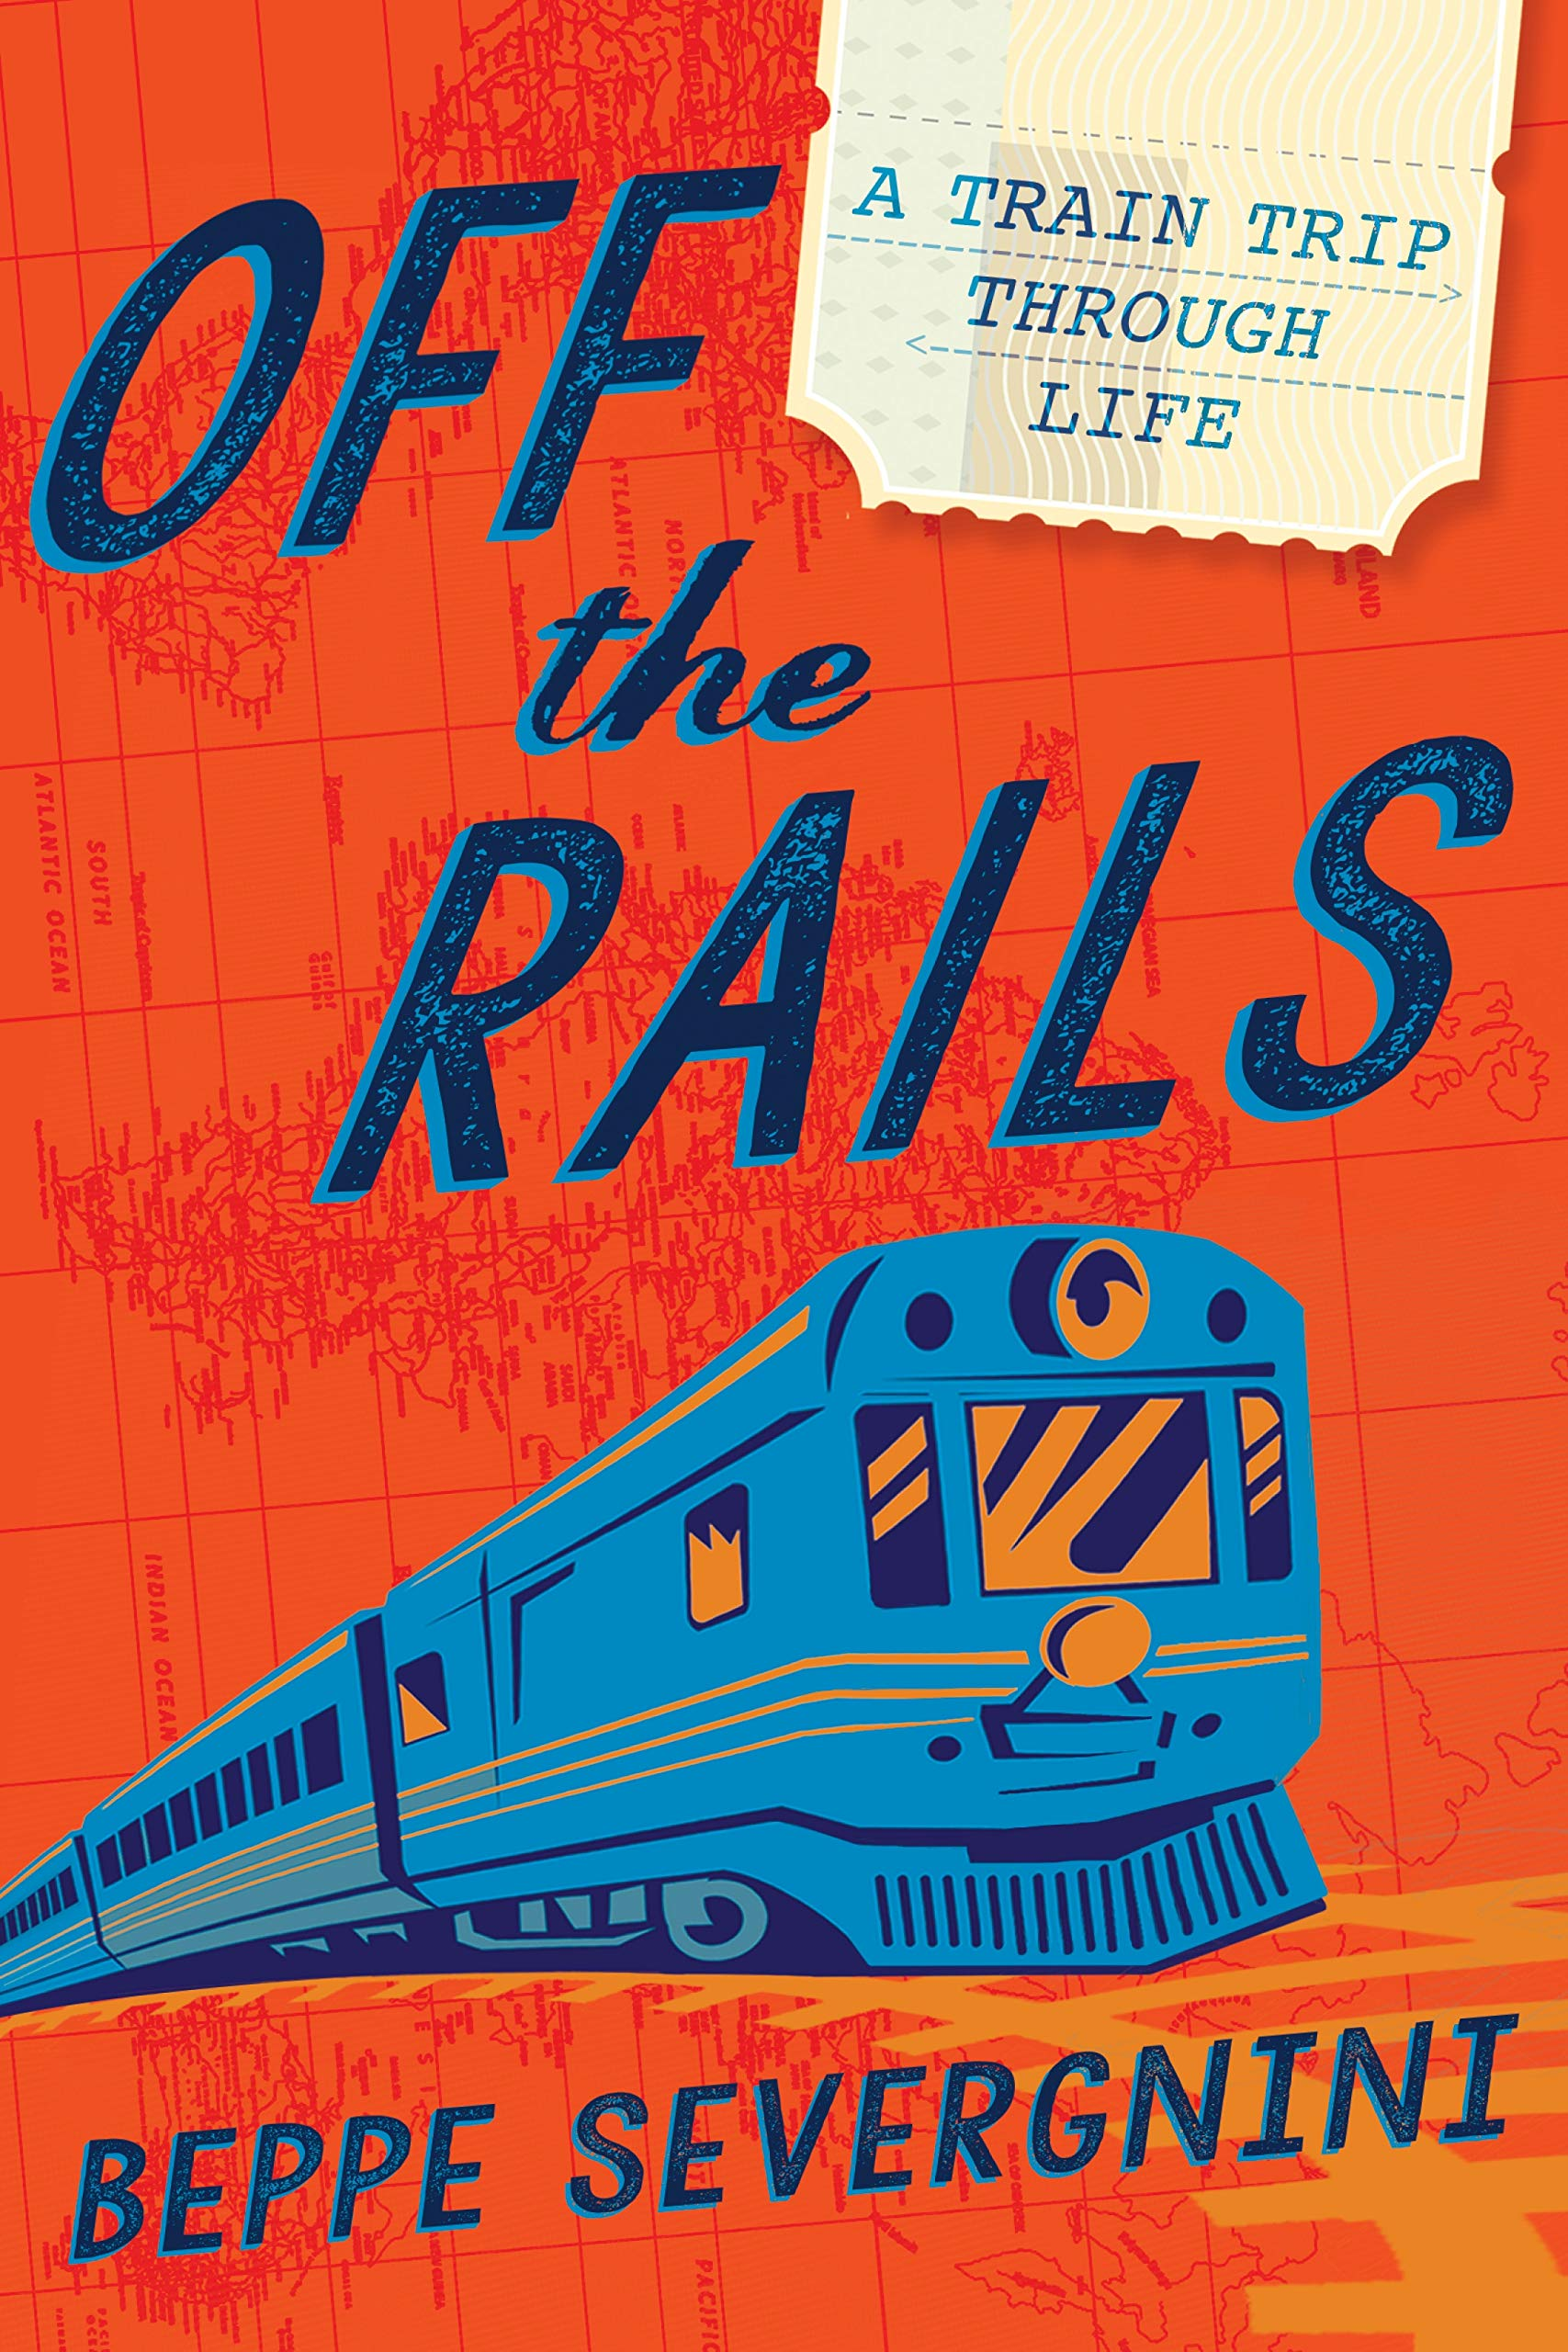 Off the Rails: A Train Trip Through Life: Beppe Severgnini